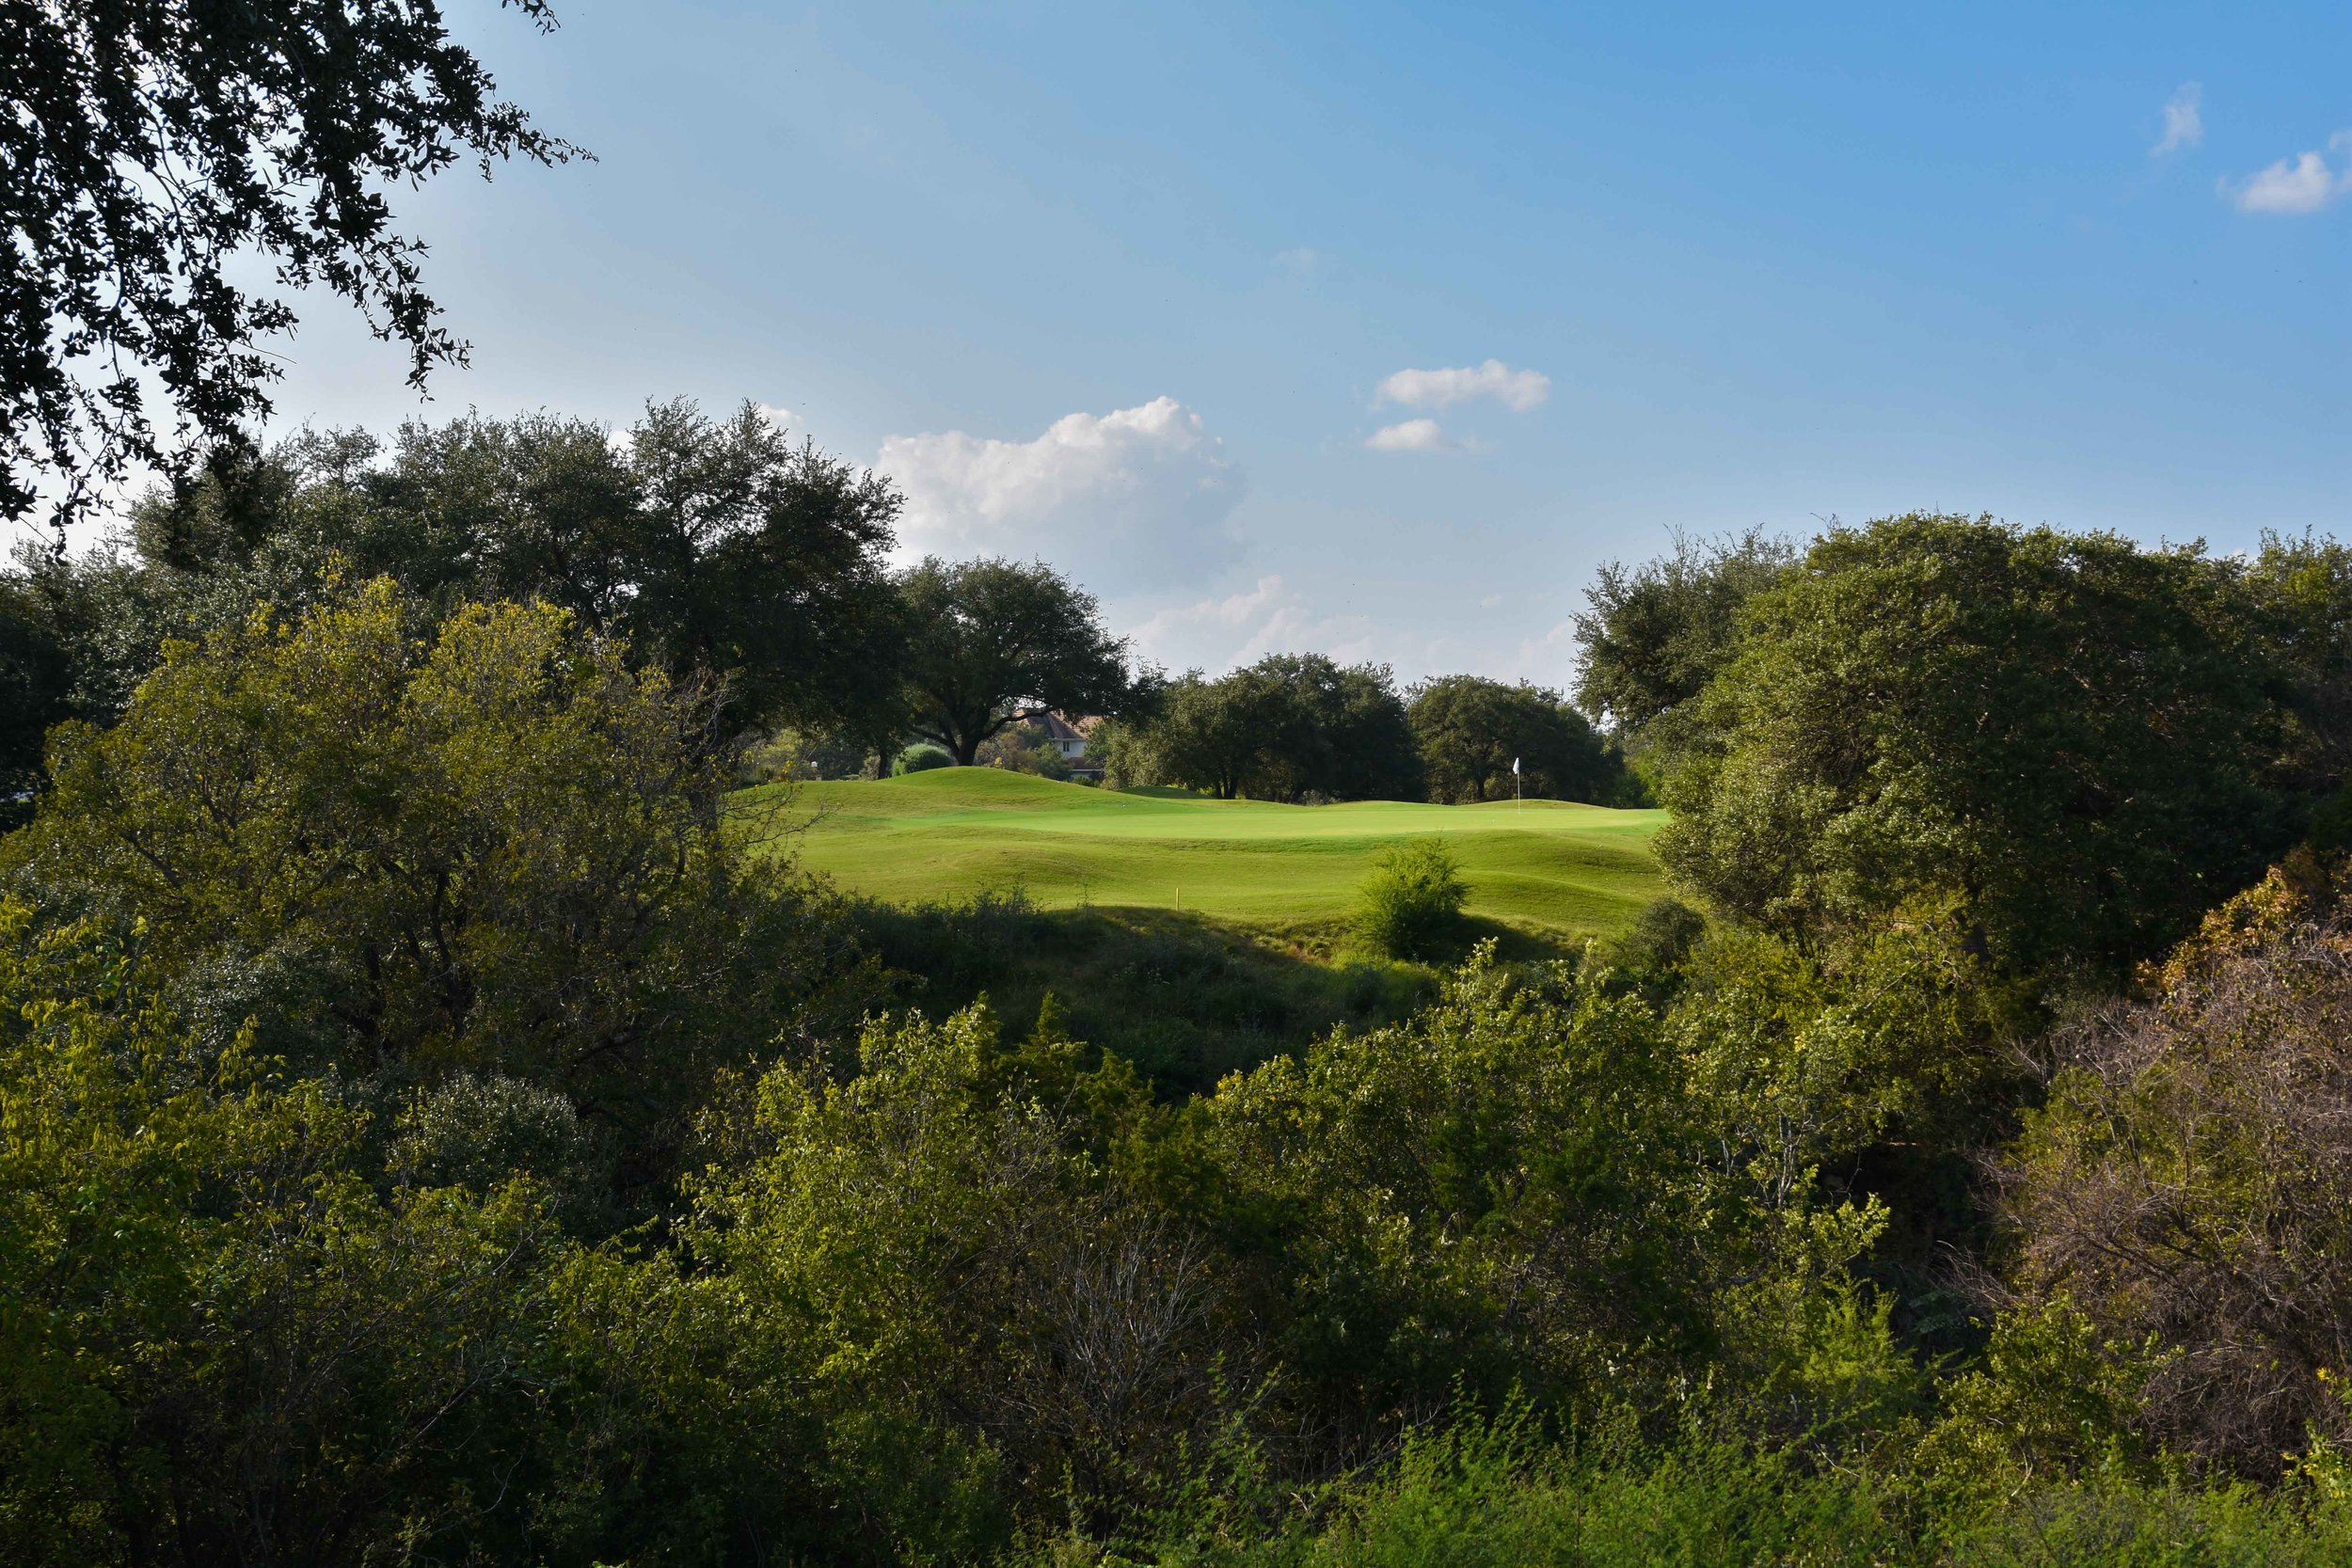 The 8th hole at Barton Creek Country Club. A near ace miss here.